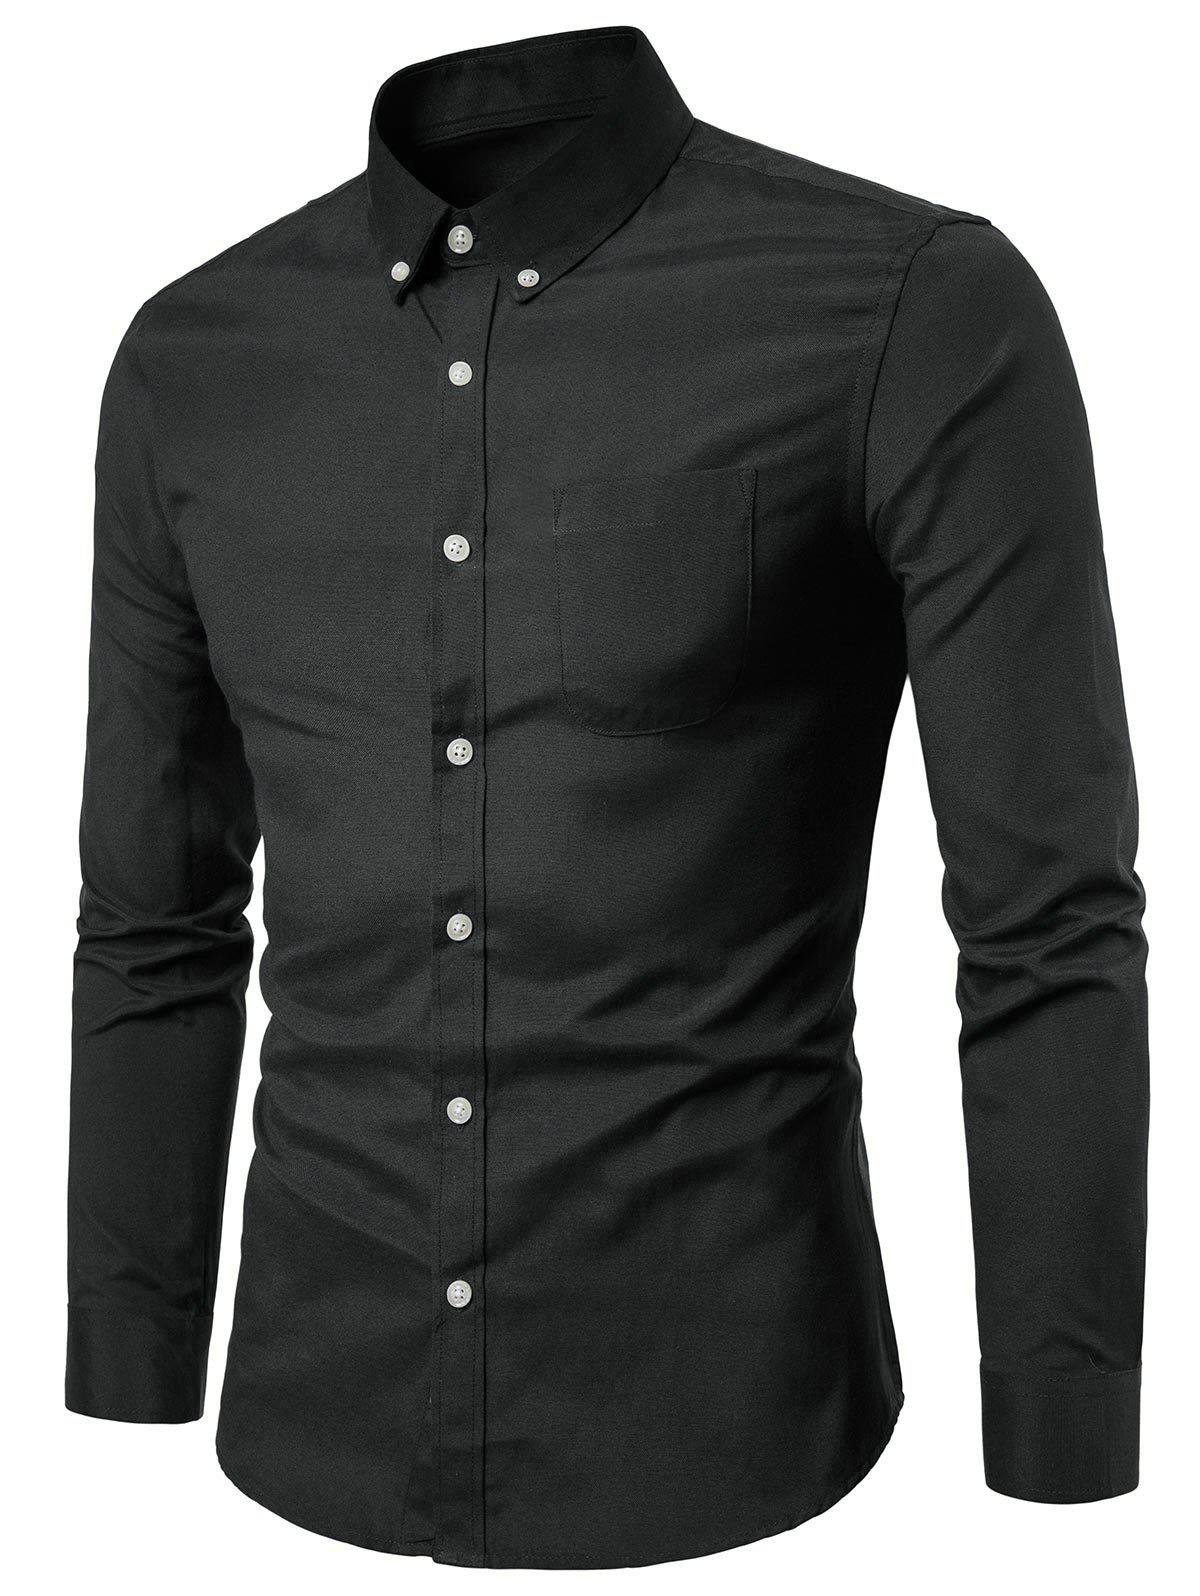 Trendy Casual Solid Color Design Long Sleeves Shirt